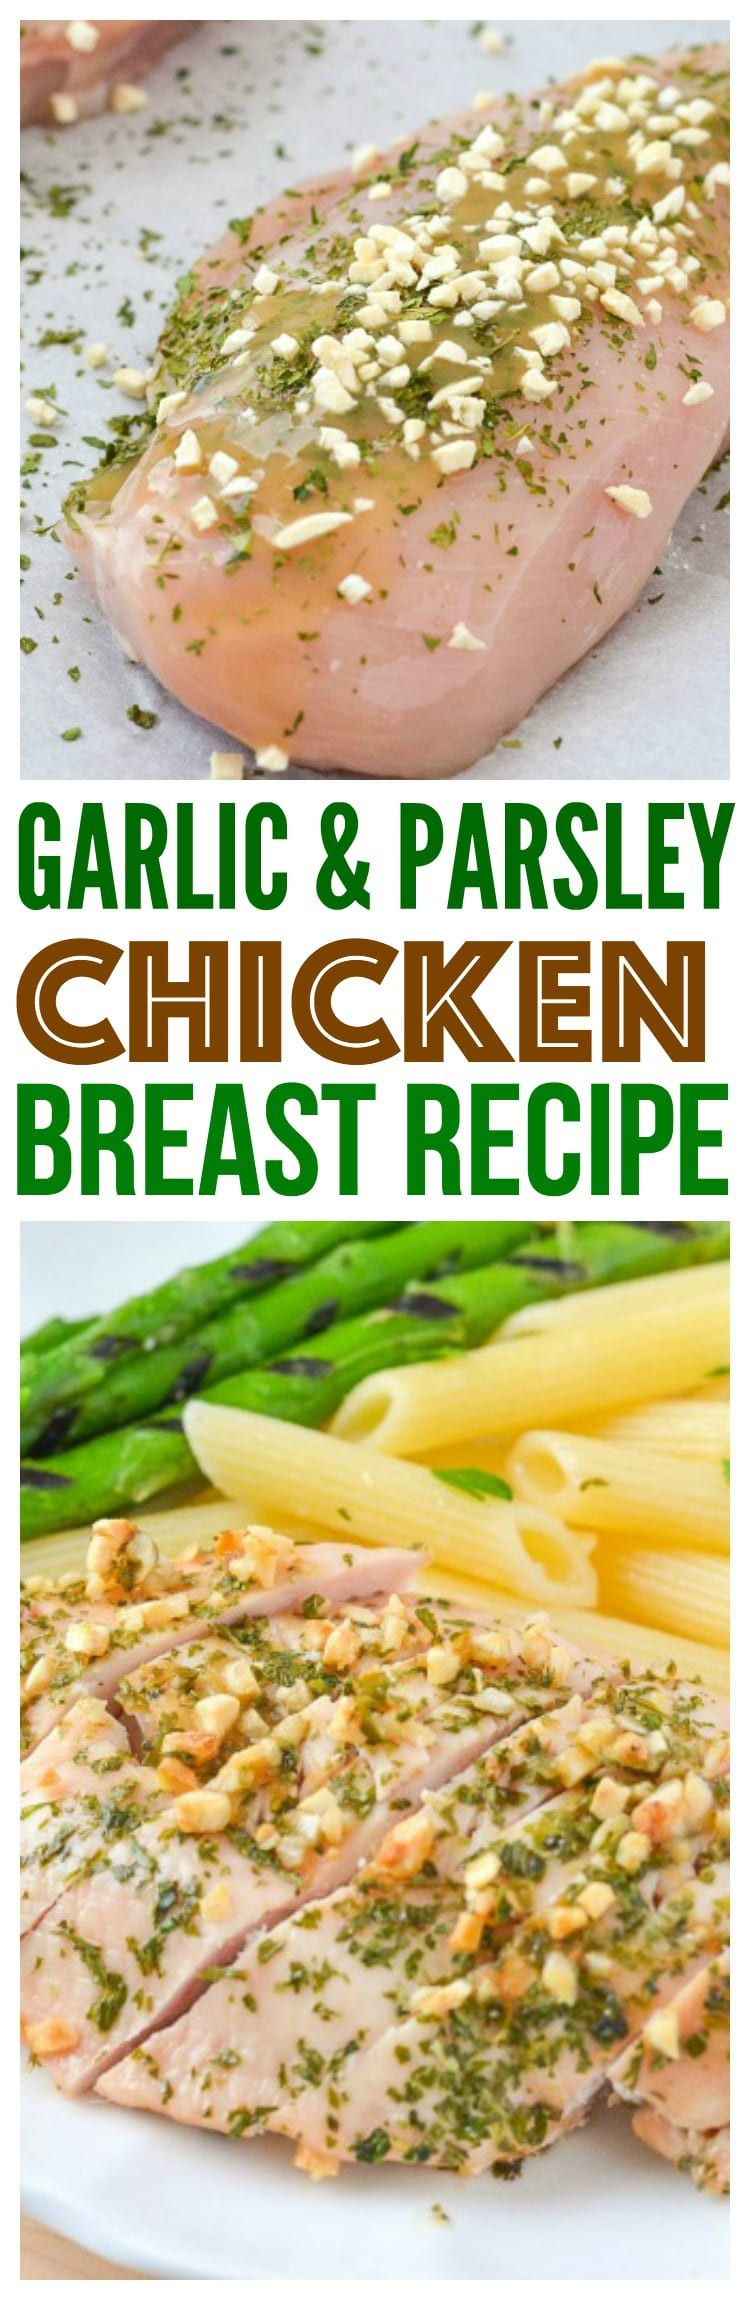 tender chicken breast recipes healthy easy baked in the oven healthy chicken dinner with garlic parsley pasta and seasoned grilled asparagus